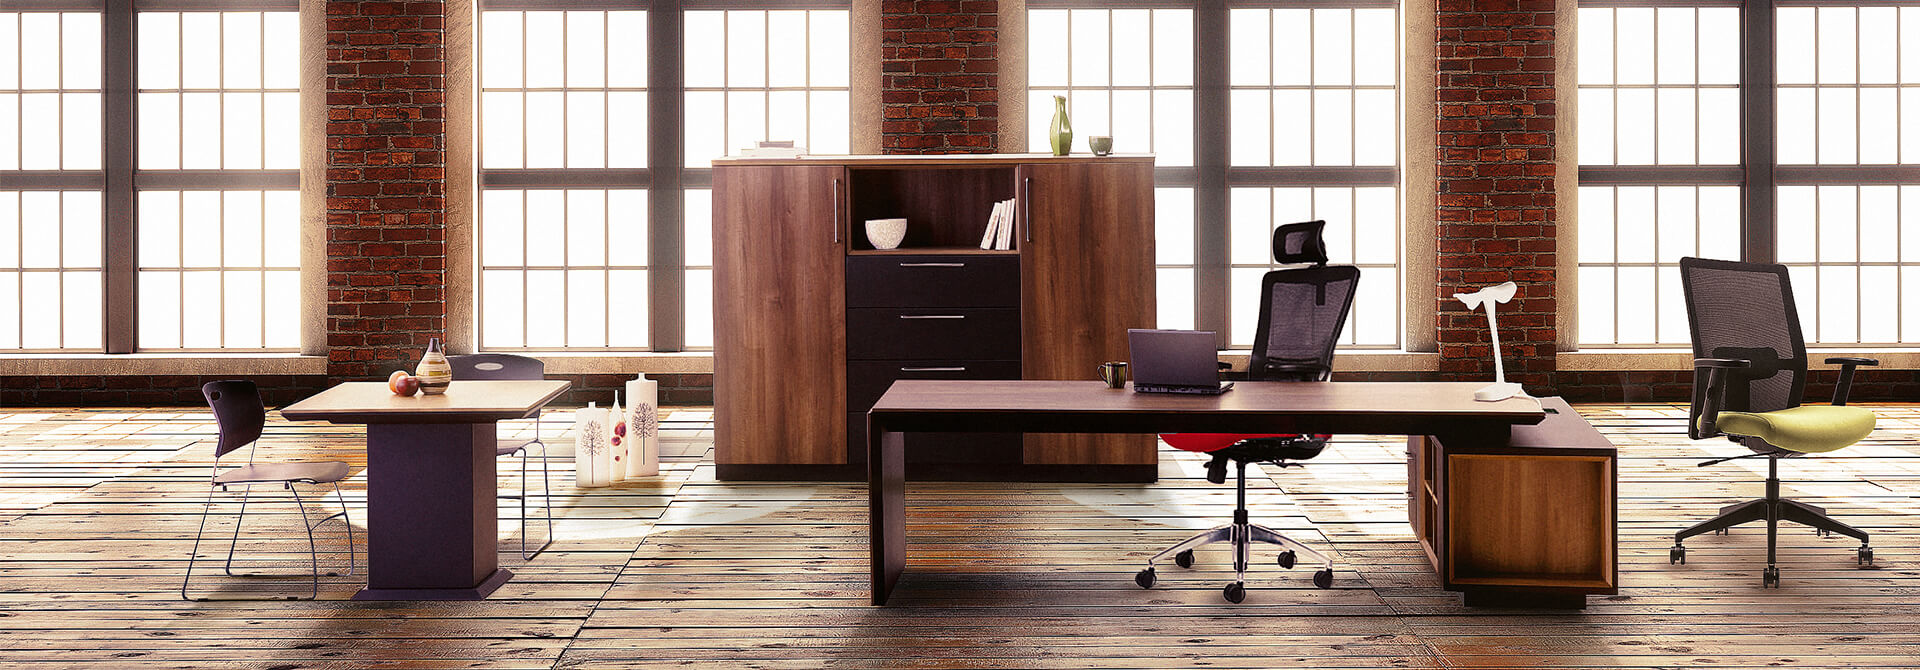 wipro office furniture